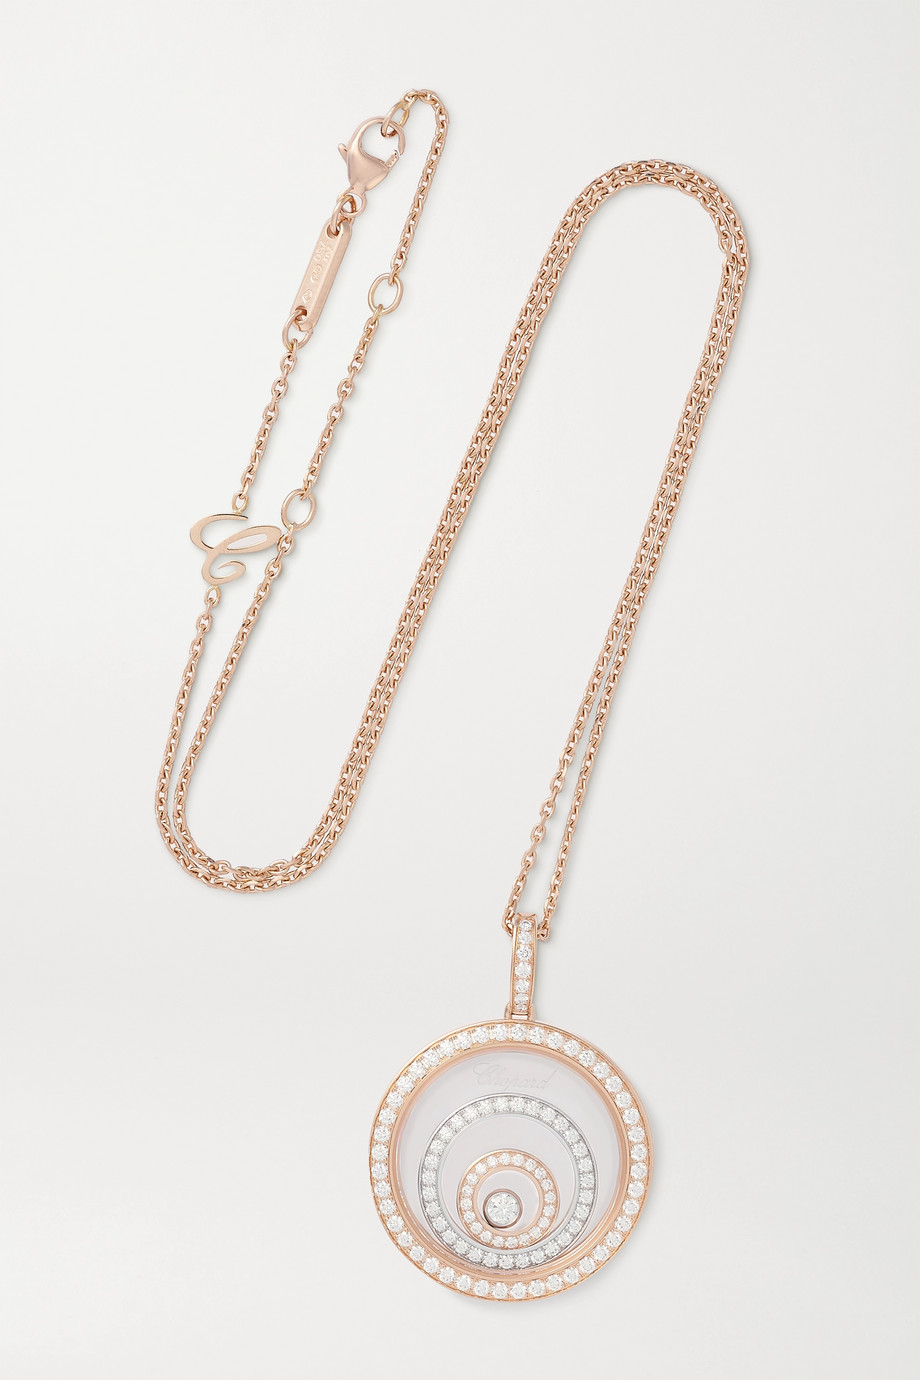 Chopard Collier en or rose et blanc 18 carats et diamants Happy Spirit